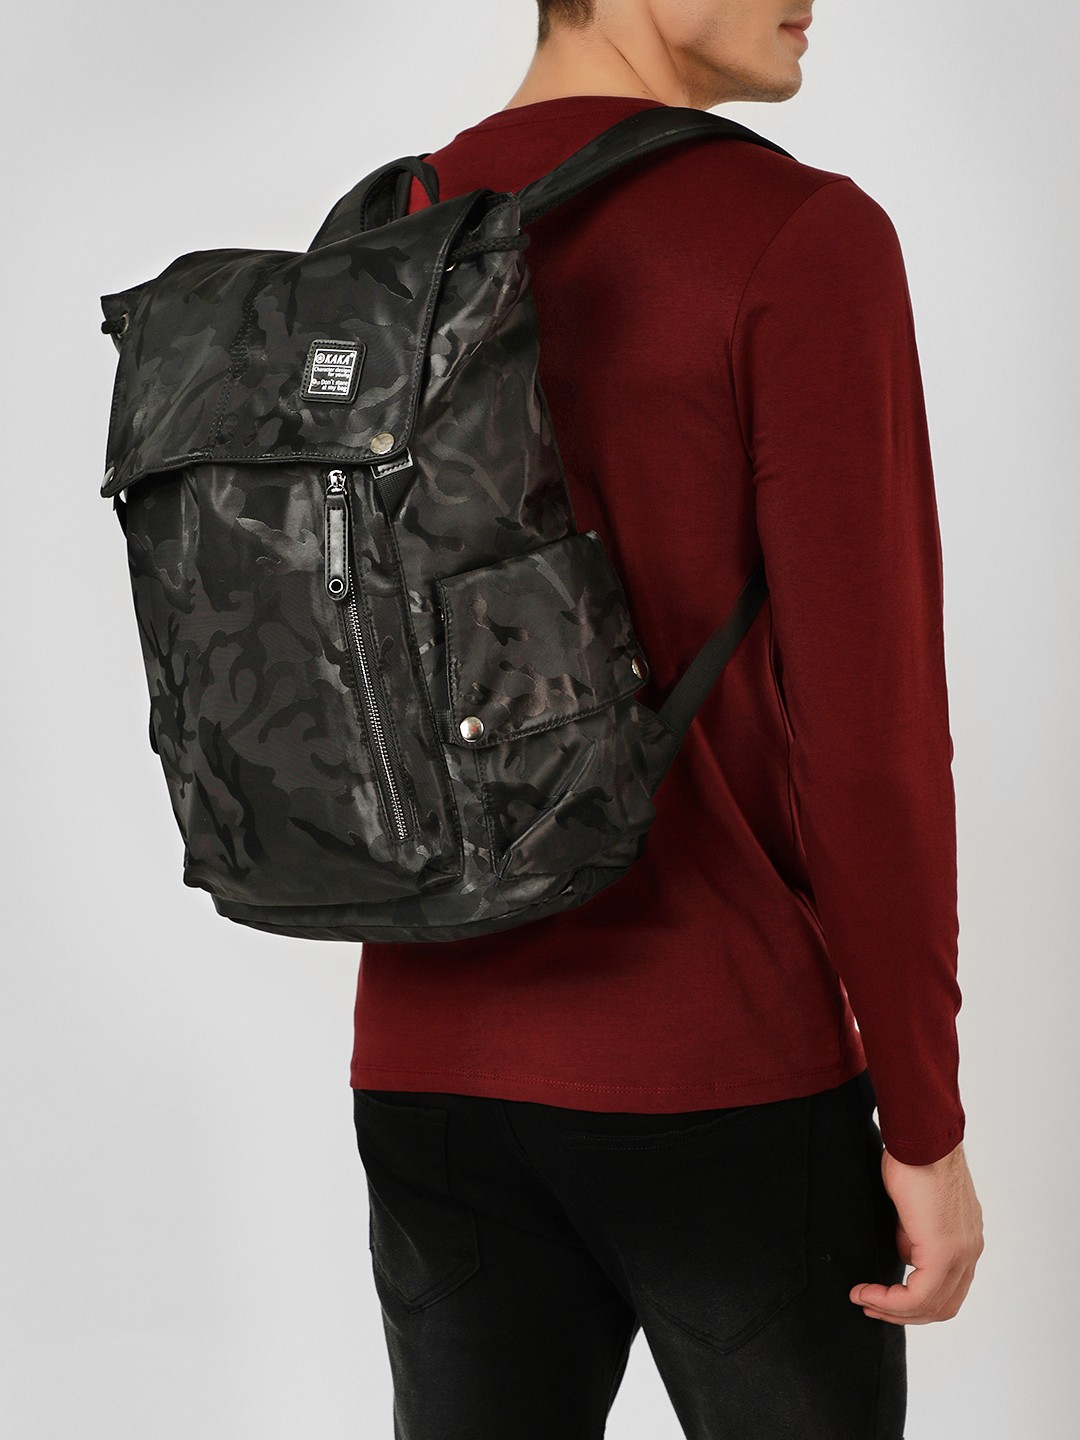 KAKA Black Camo Multi-Pocket Oversized Backpack 1